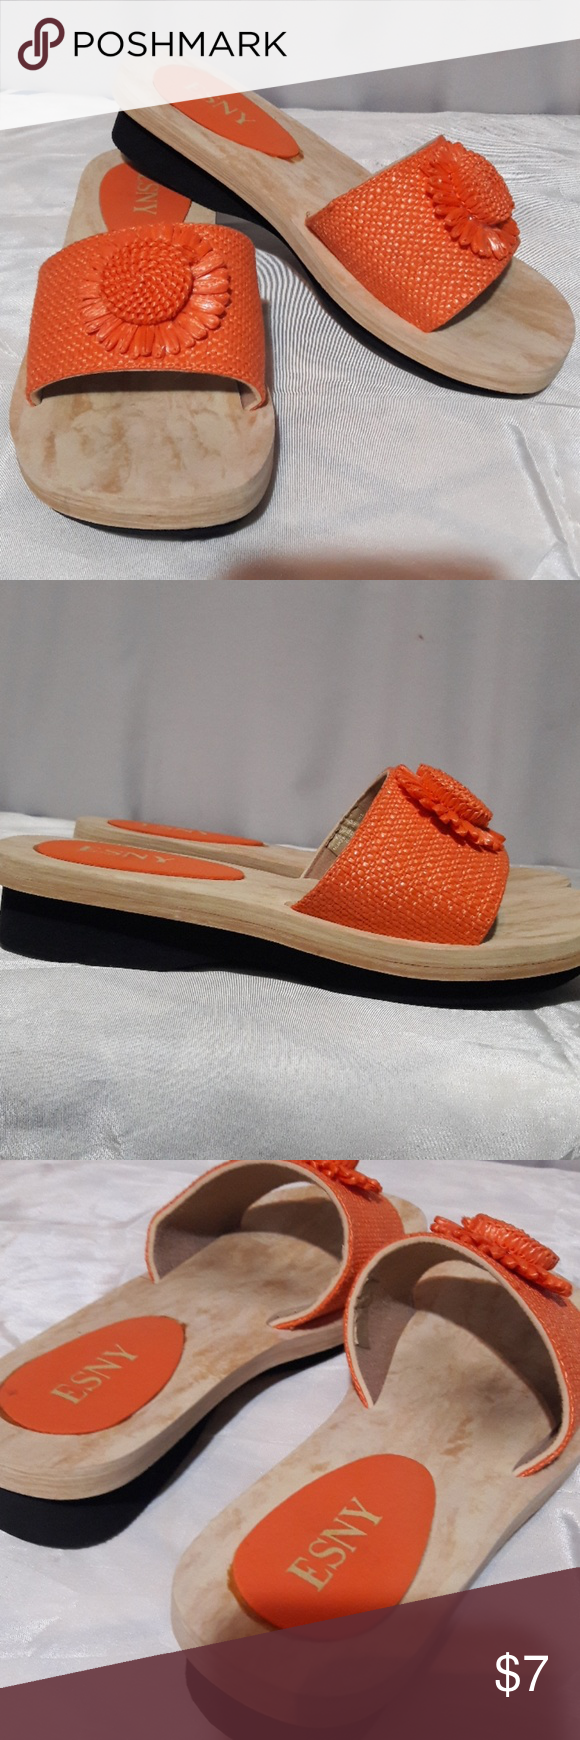 87fb15635ff95 Slides sandals 7m foam lightweight shoes 6.5   7 very good condition Shoes  Sandals